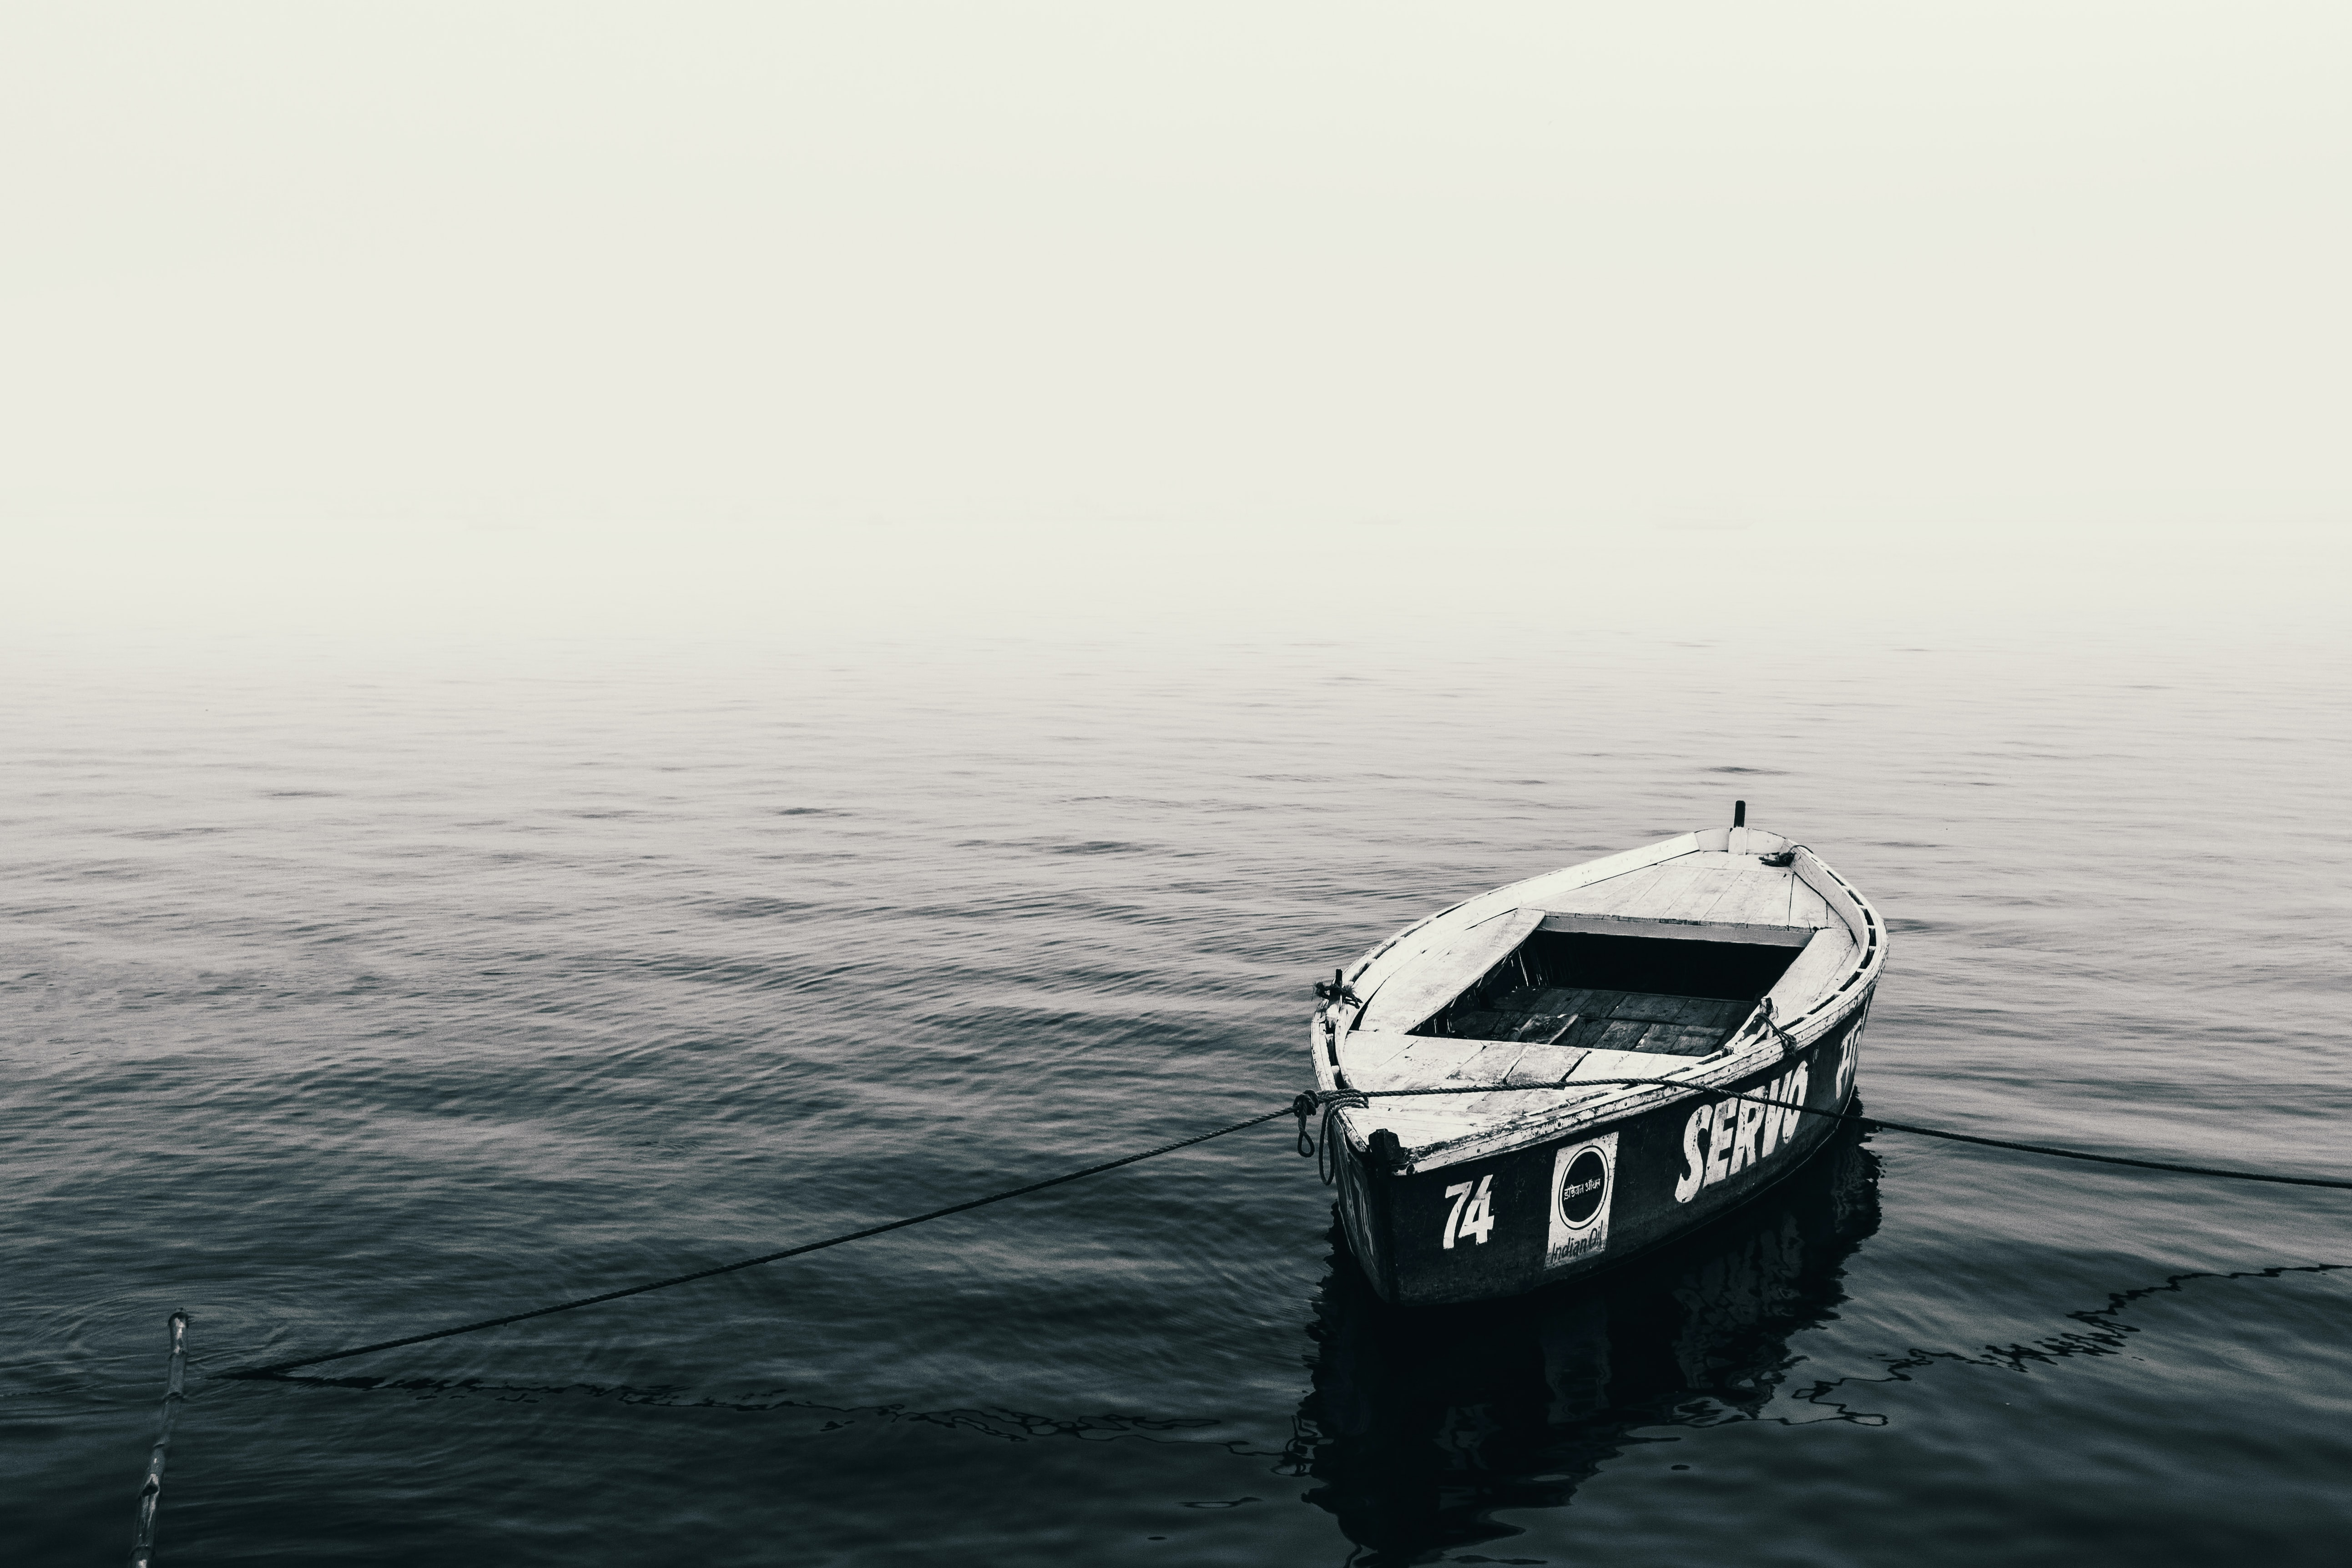 photo of white canoe on body of water